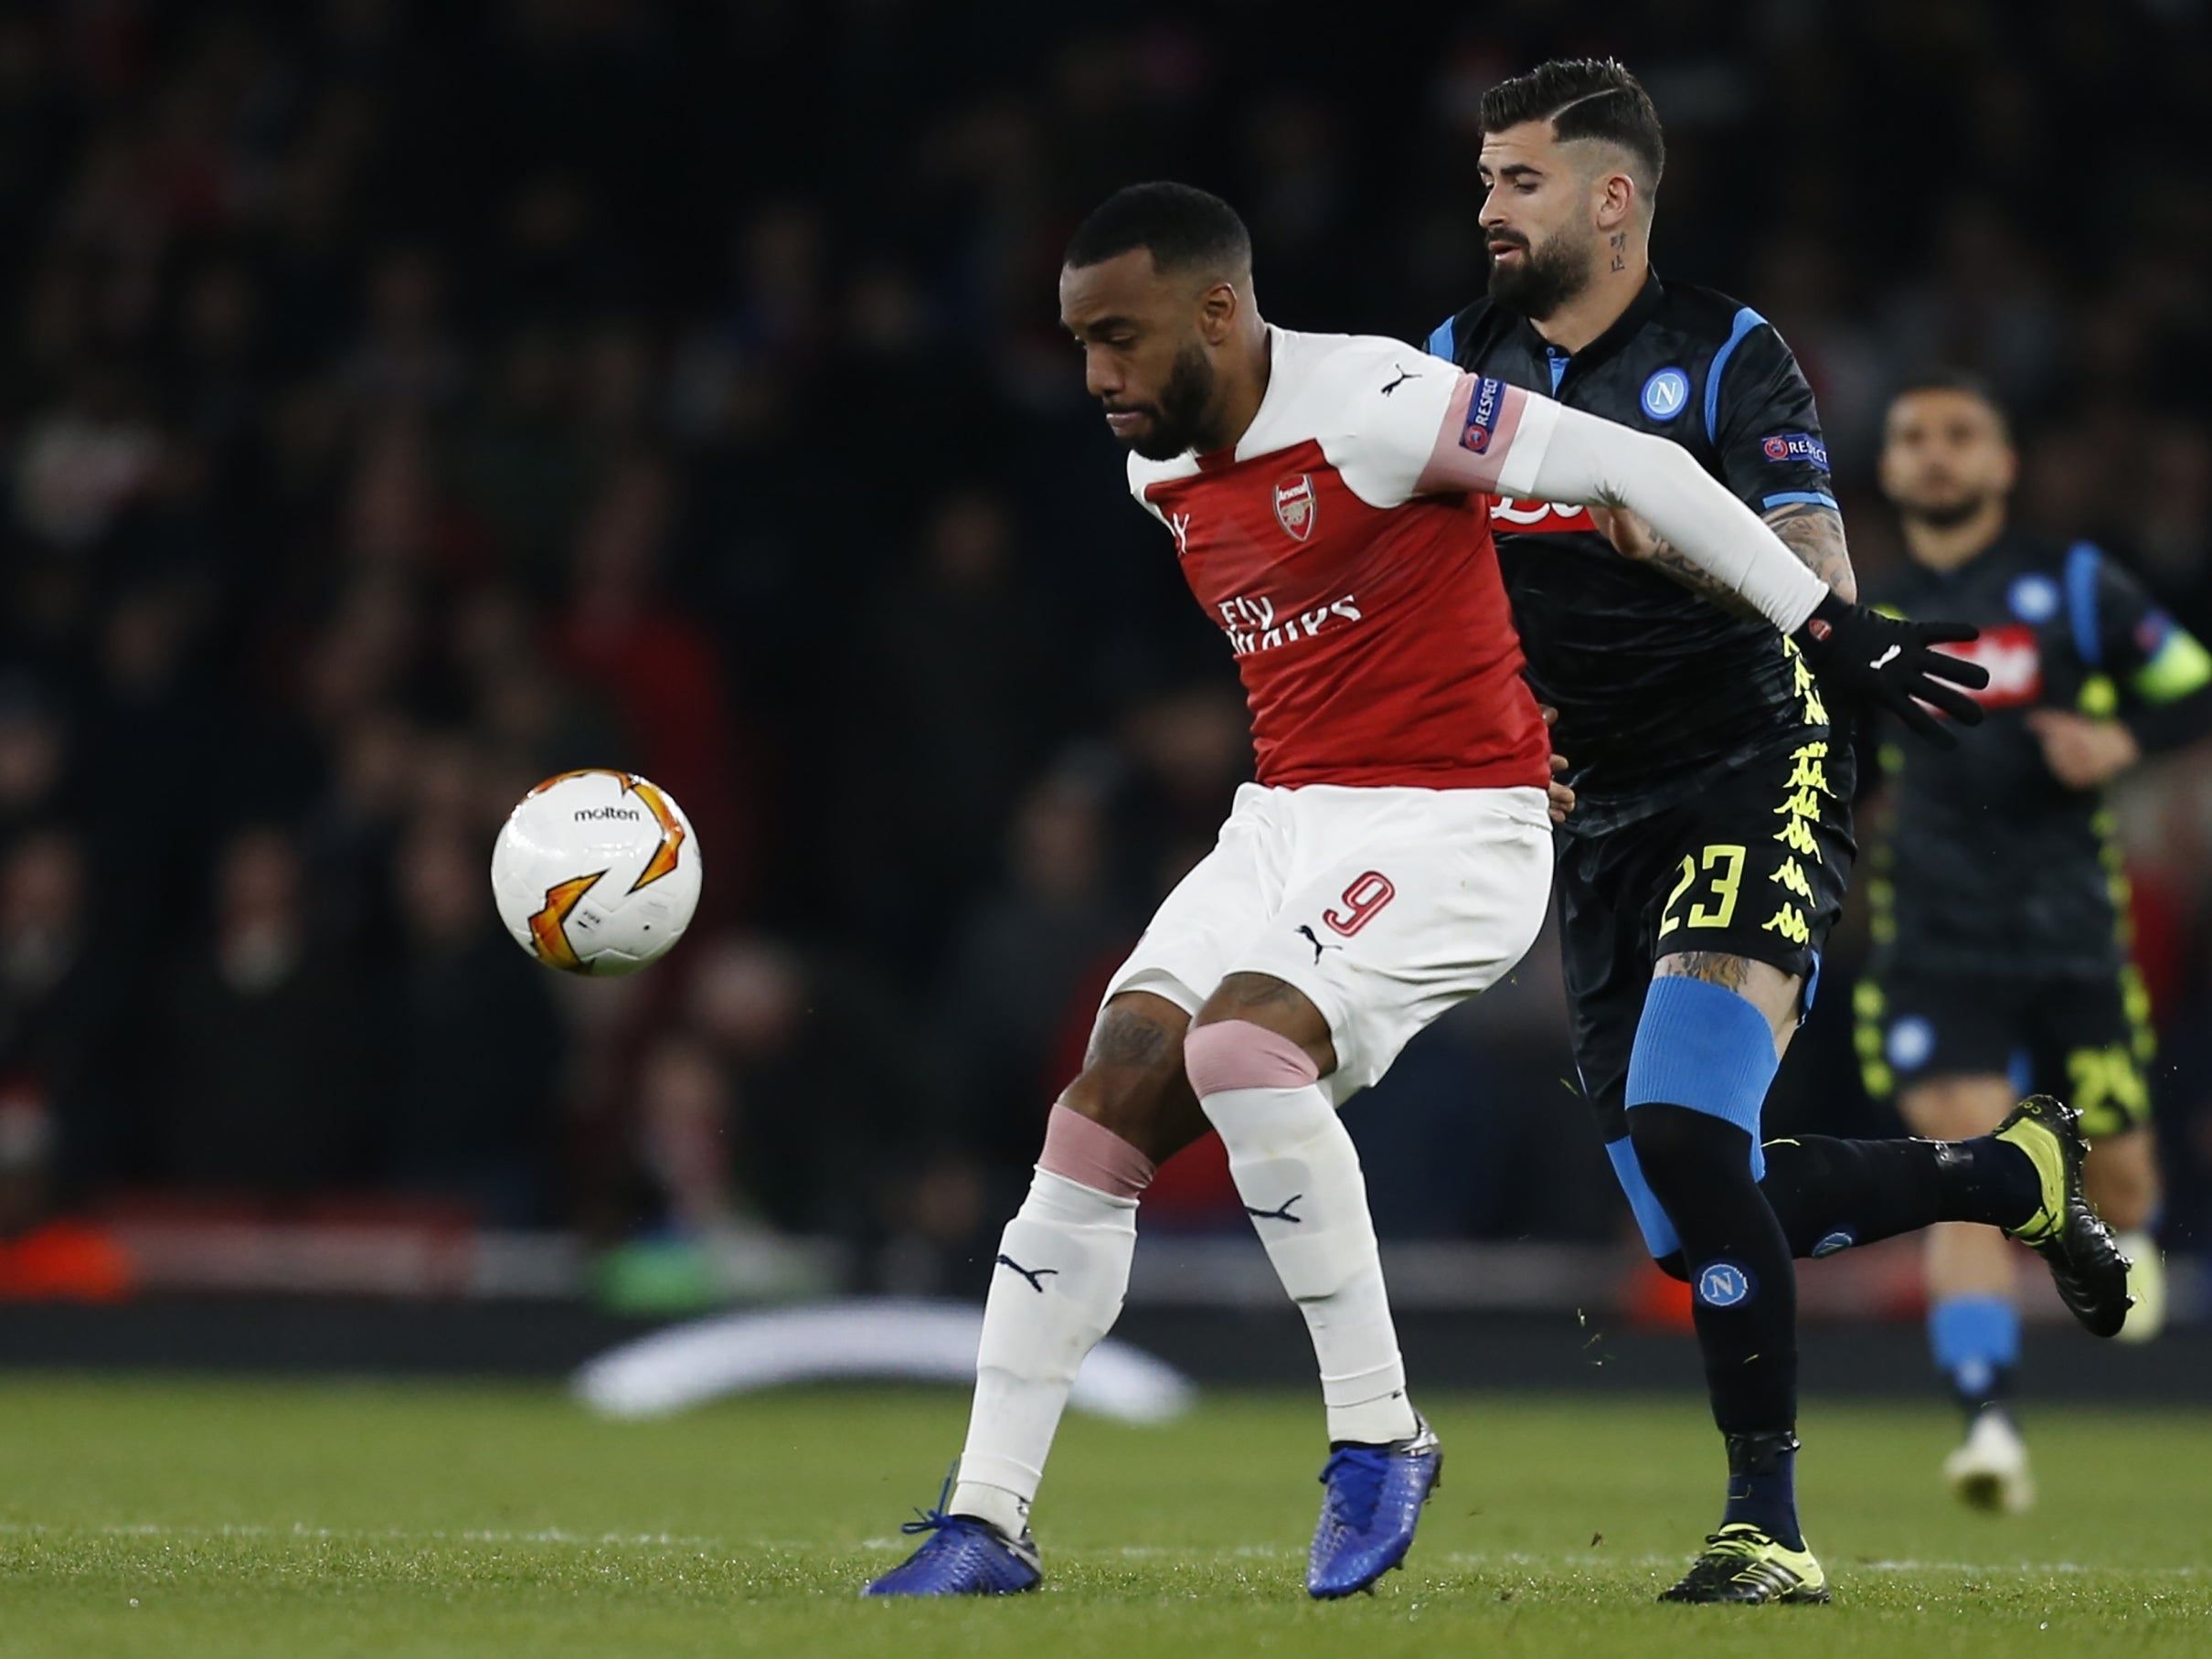 Napoli vs Arsenal: Kick-off time, TV channel and how to stream Europa League quarter-final second leg